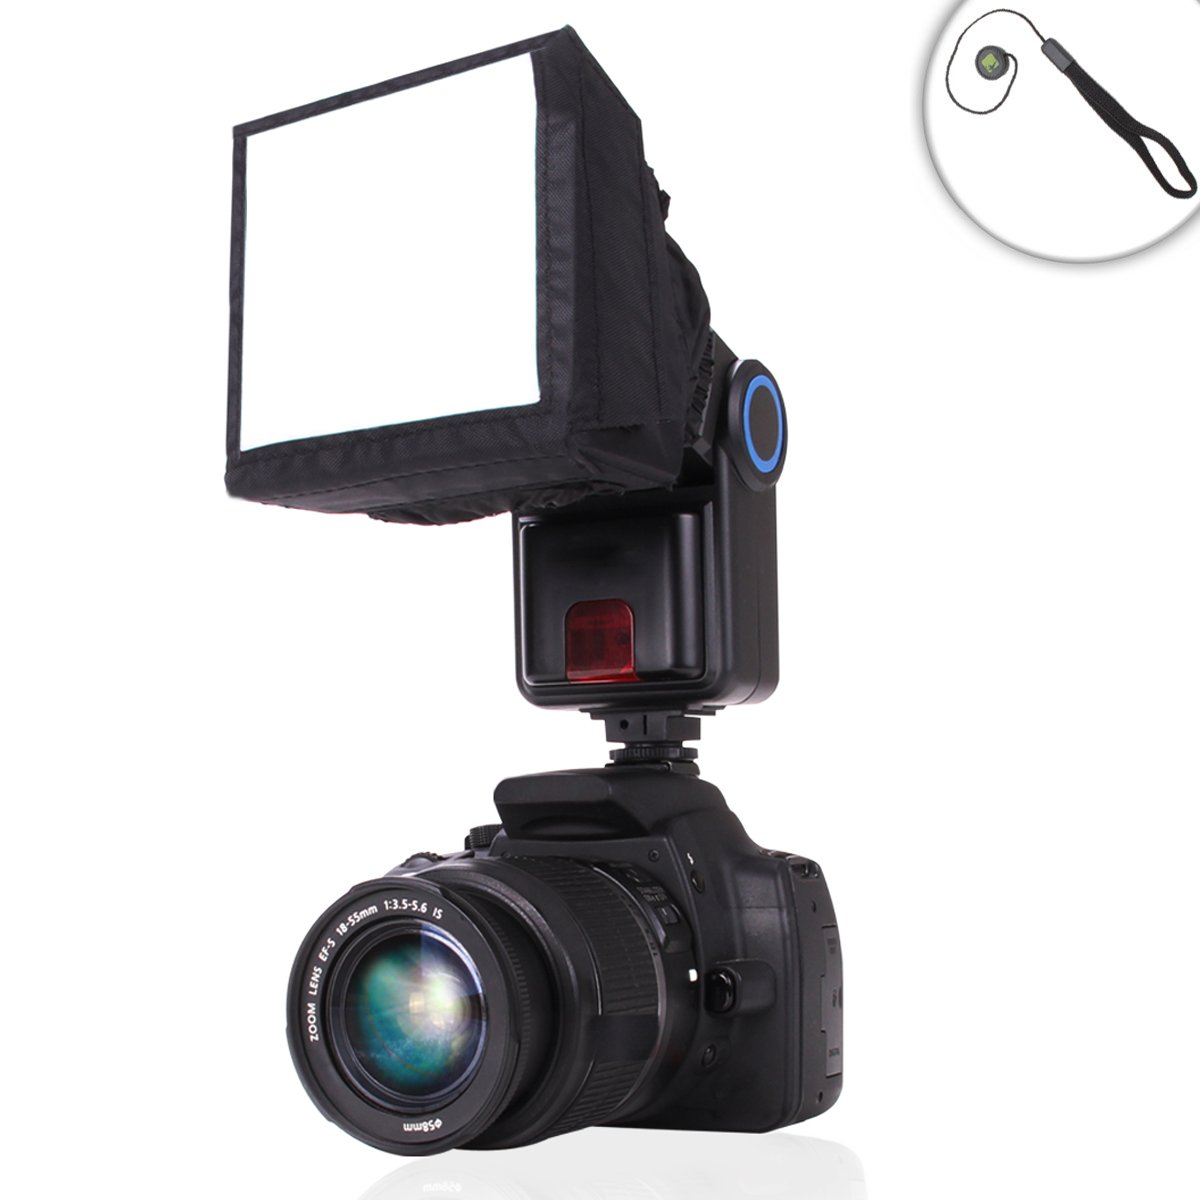 Softbox Light Flash Popup Diffuser Studio with Portable Design for External Speedlites by ENHANCE - Works With Neewer , Yongnuo , Altura , Bower and More Speedlites